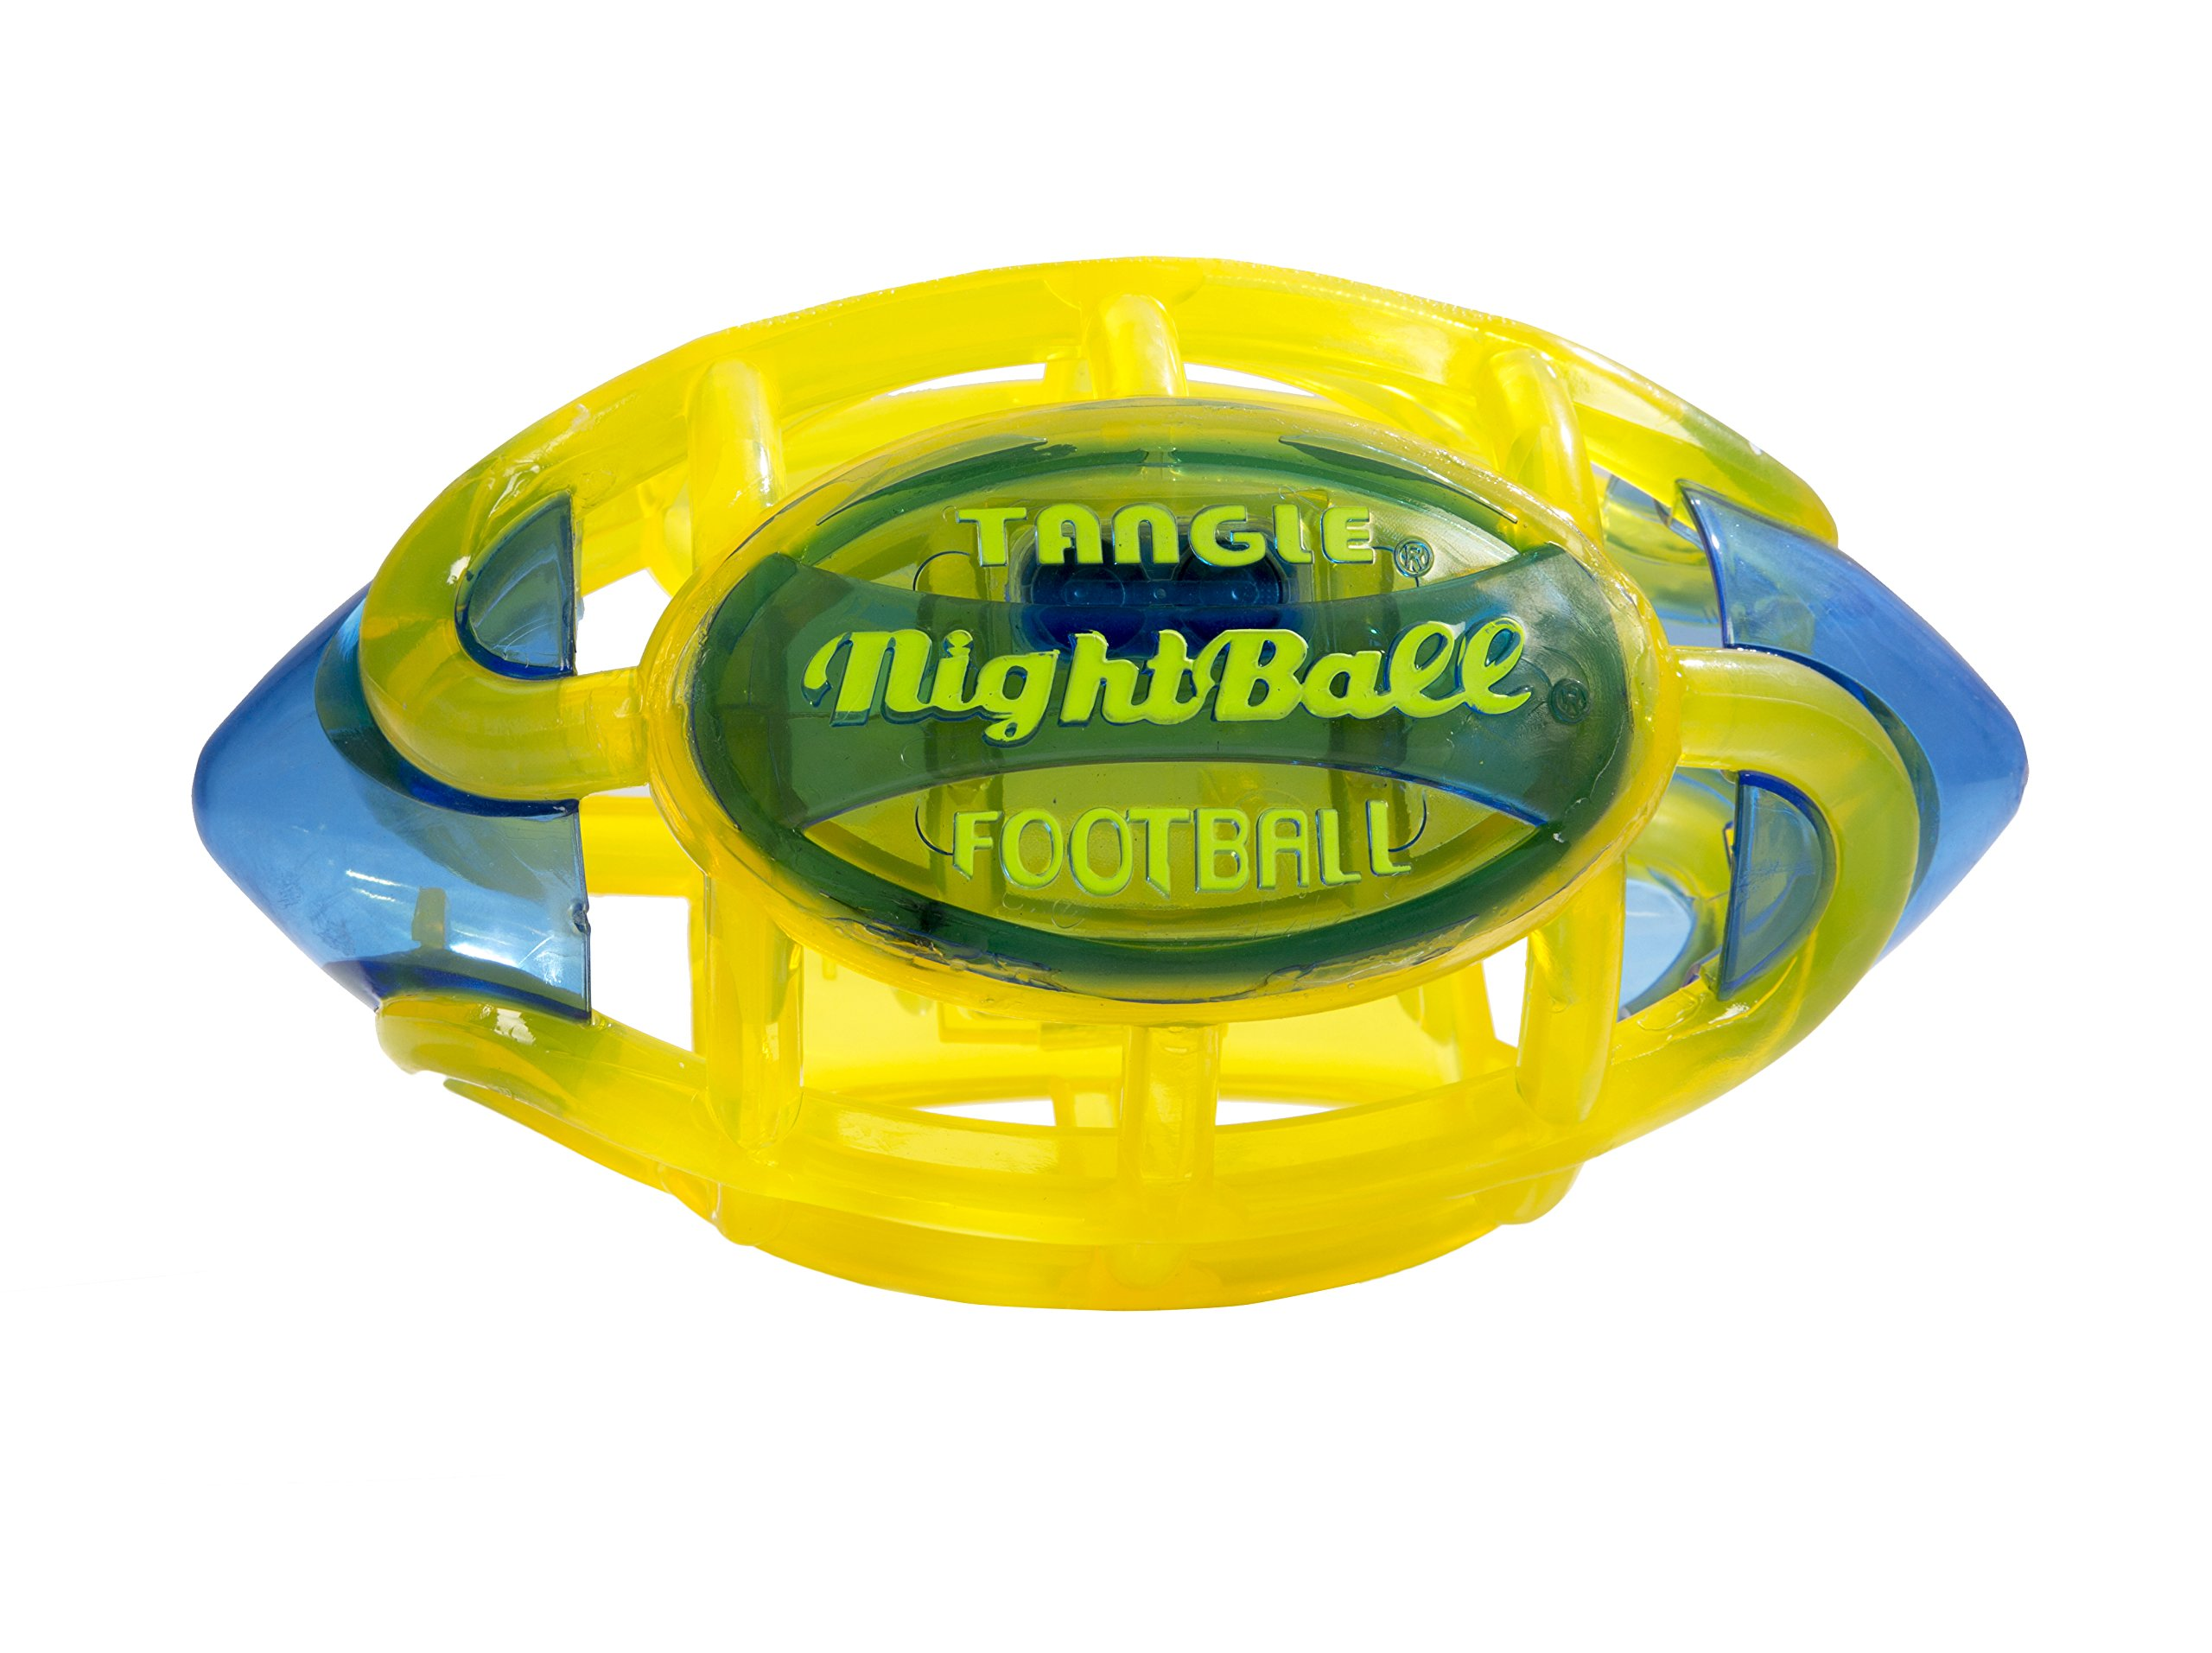 Tangle NightBall Glow in the Dark Light Up LED Football, Yellow with Blue